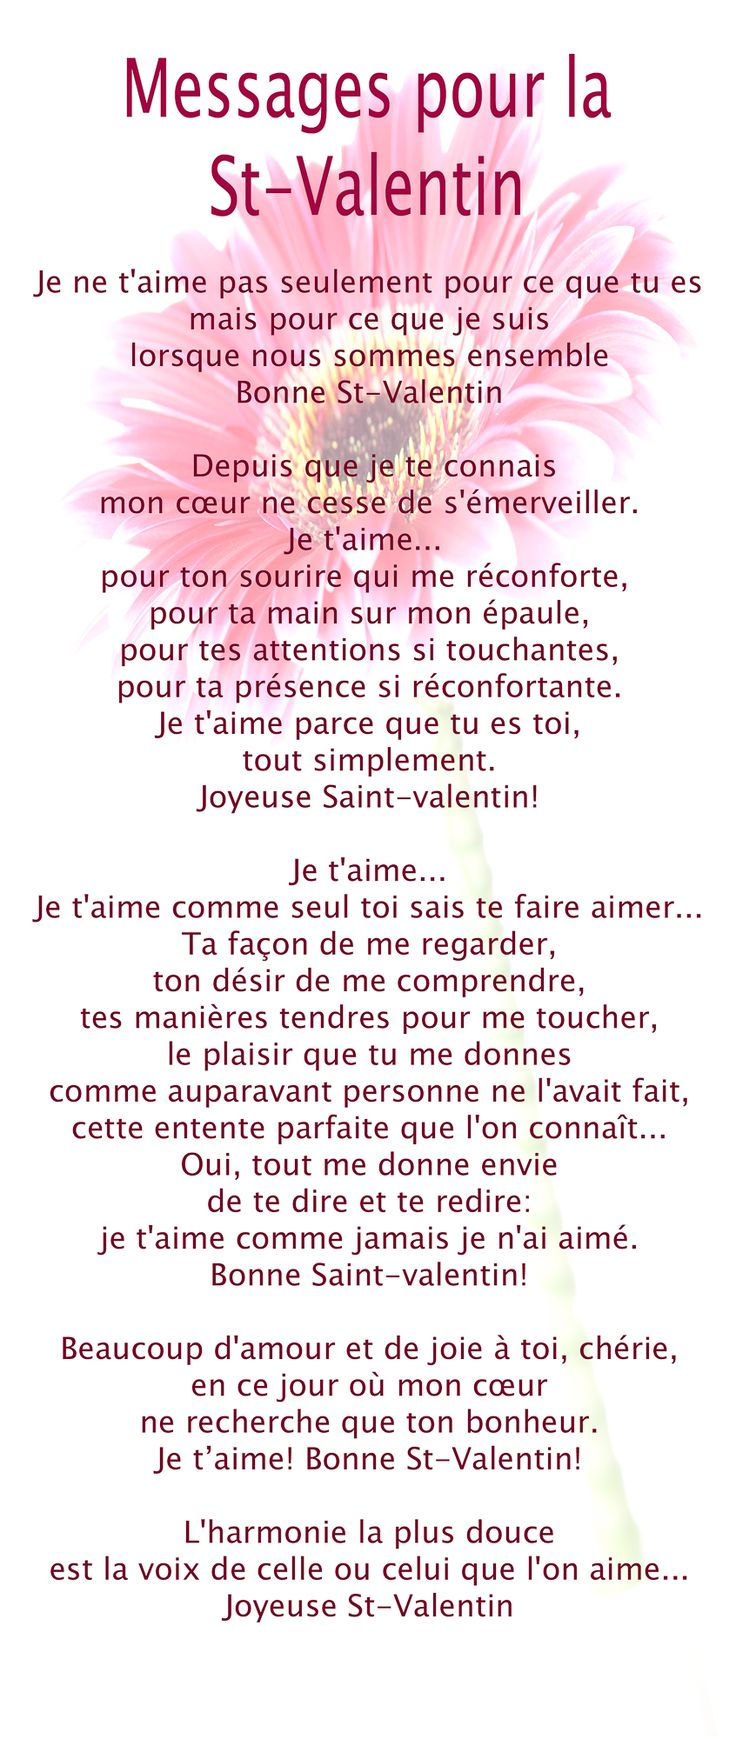 25 unique valentine poems ideas on pinterest fingerprint heart valentine theme and valentine - Poeme d amour pour la saint valentin ...